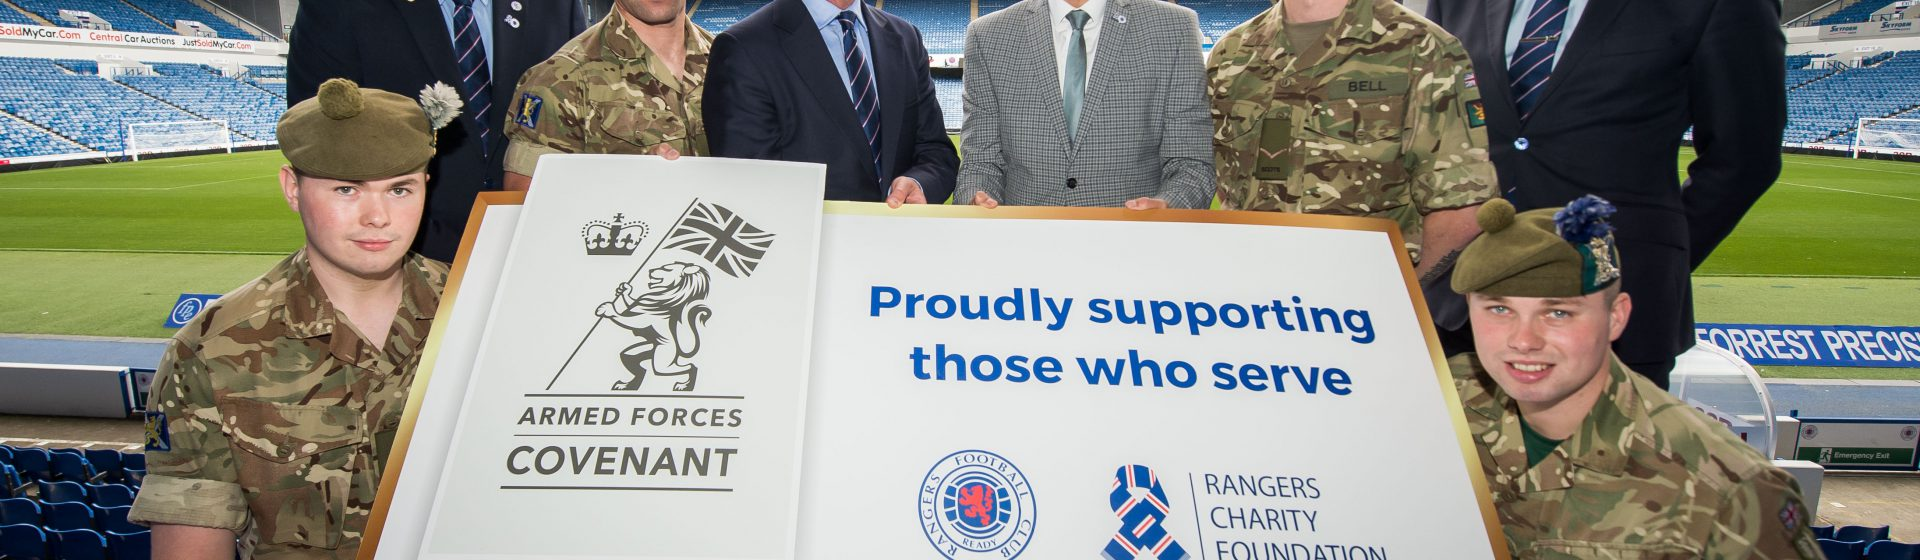 Armed Forces Foundation >> Ection For New Armed Forces Partners At Rangers Foundation